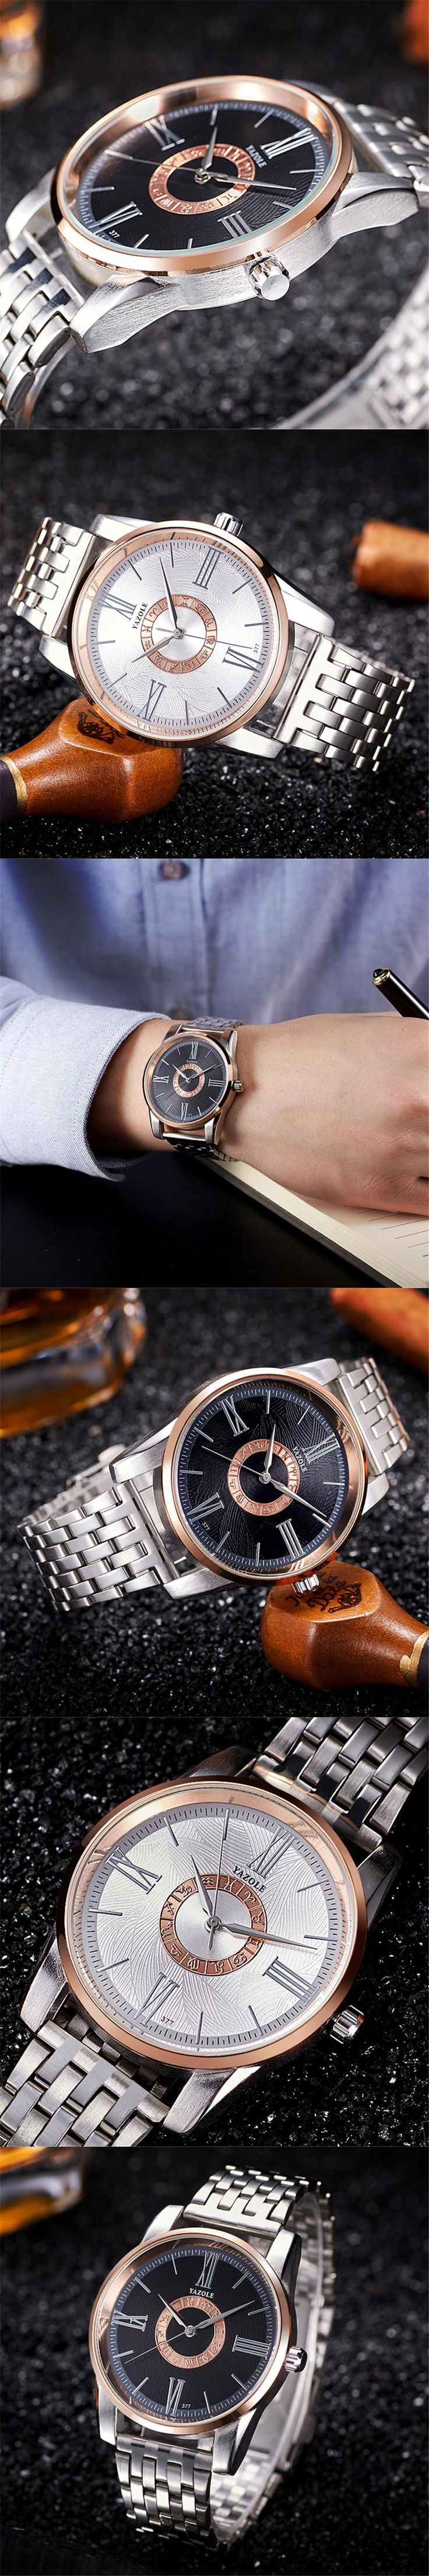 stainless top my calendar buy watchs function brand kinyued com in at band waterproof men lazada mechanical watches malaysia luxury steel price watch business best